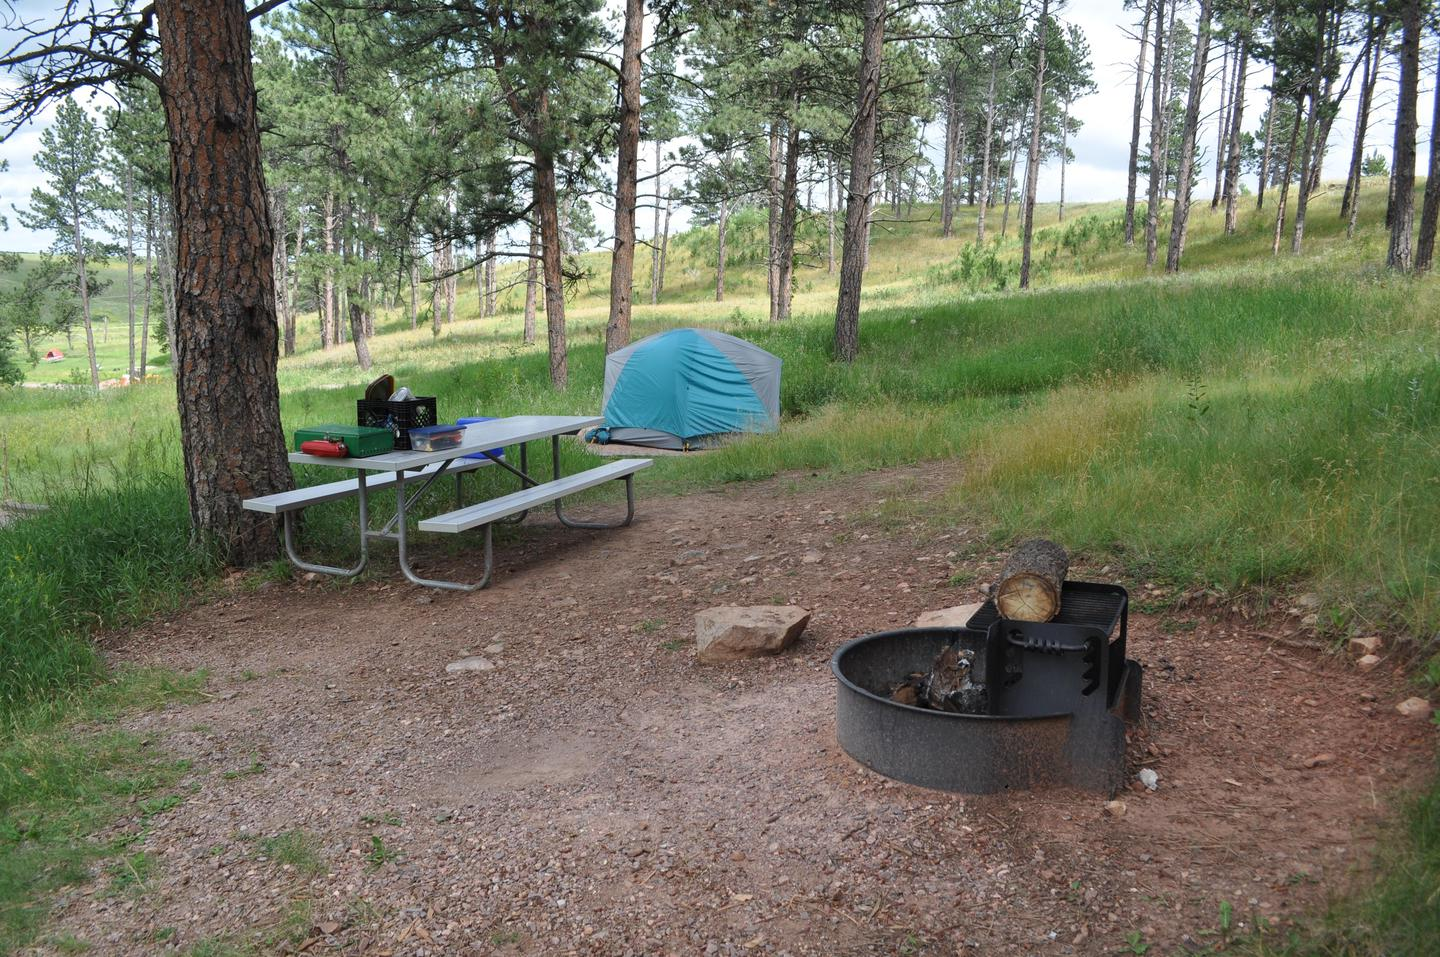 Elk Mountain CampsiteEach campsite comes with a picnic bench and a fire ring.